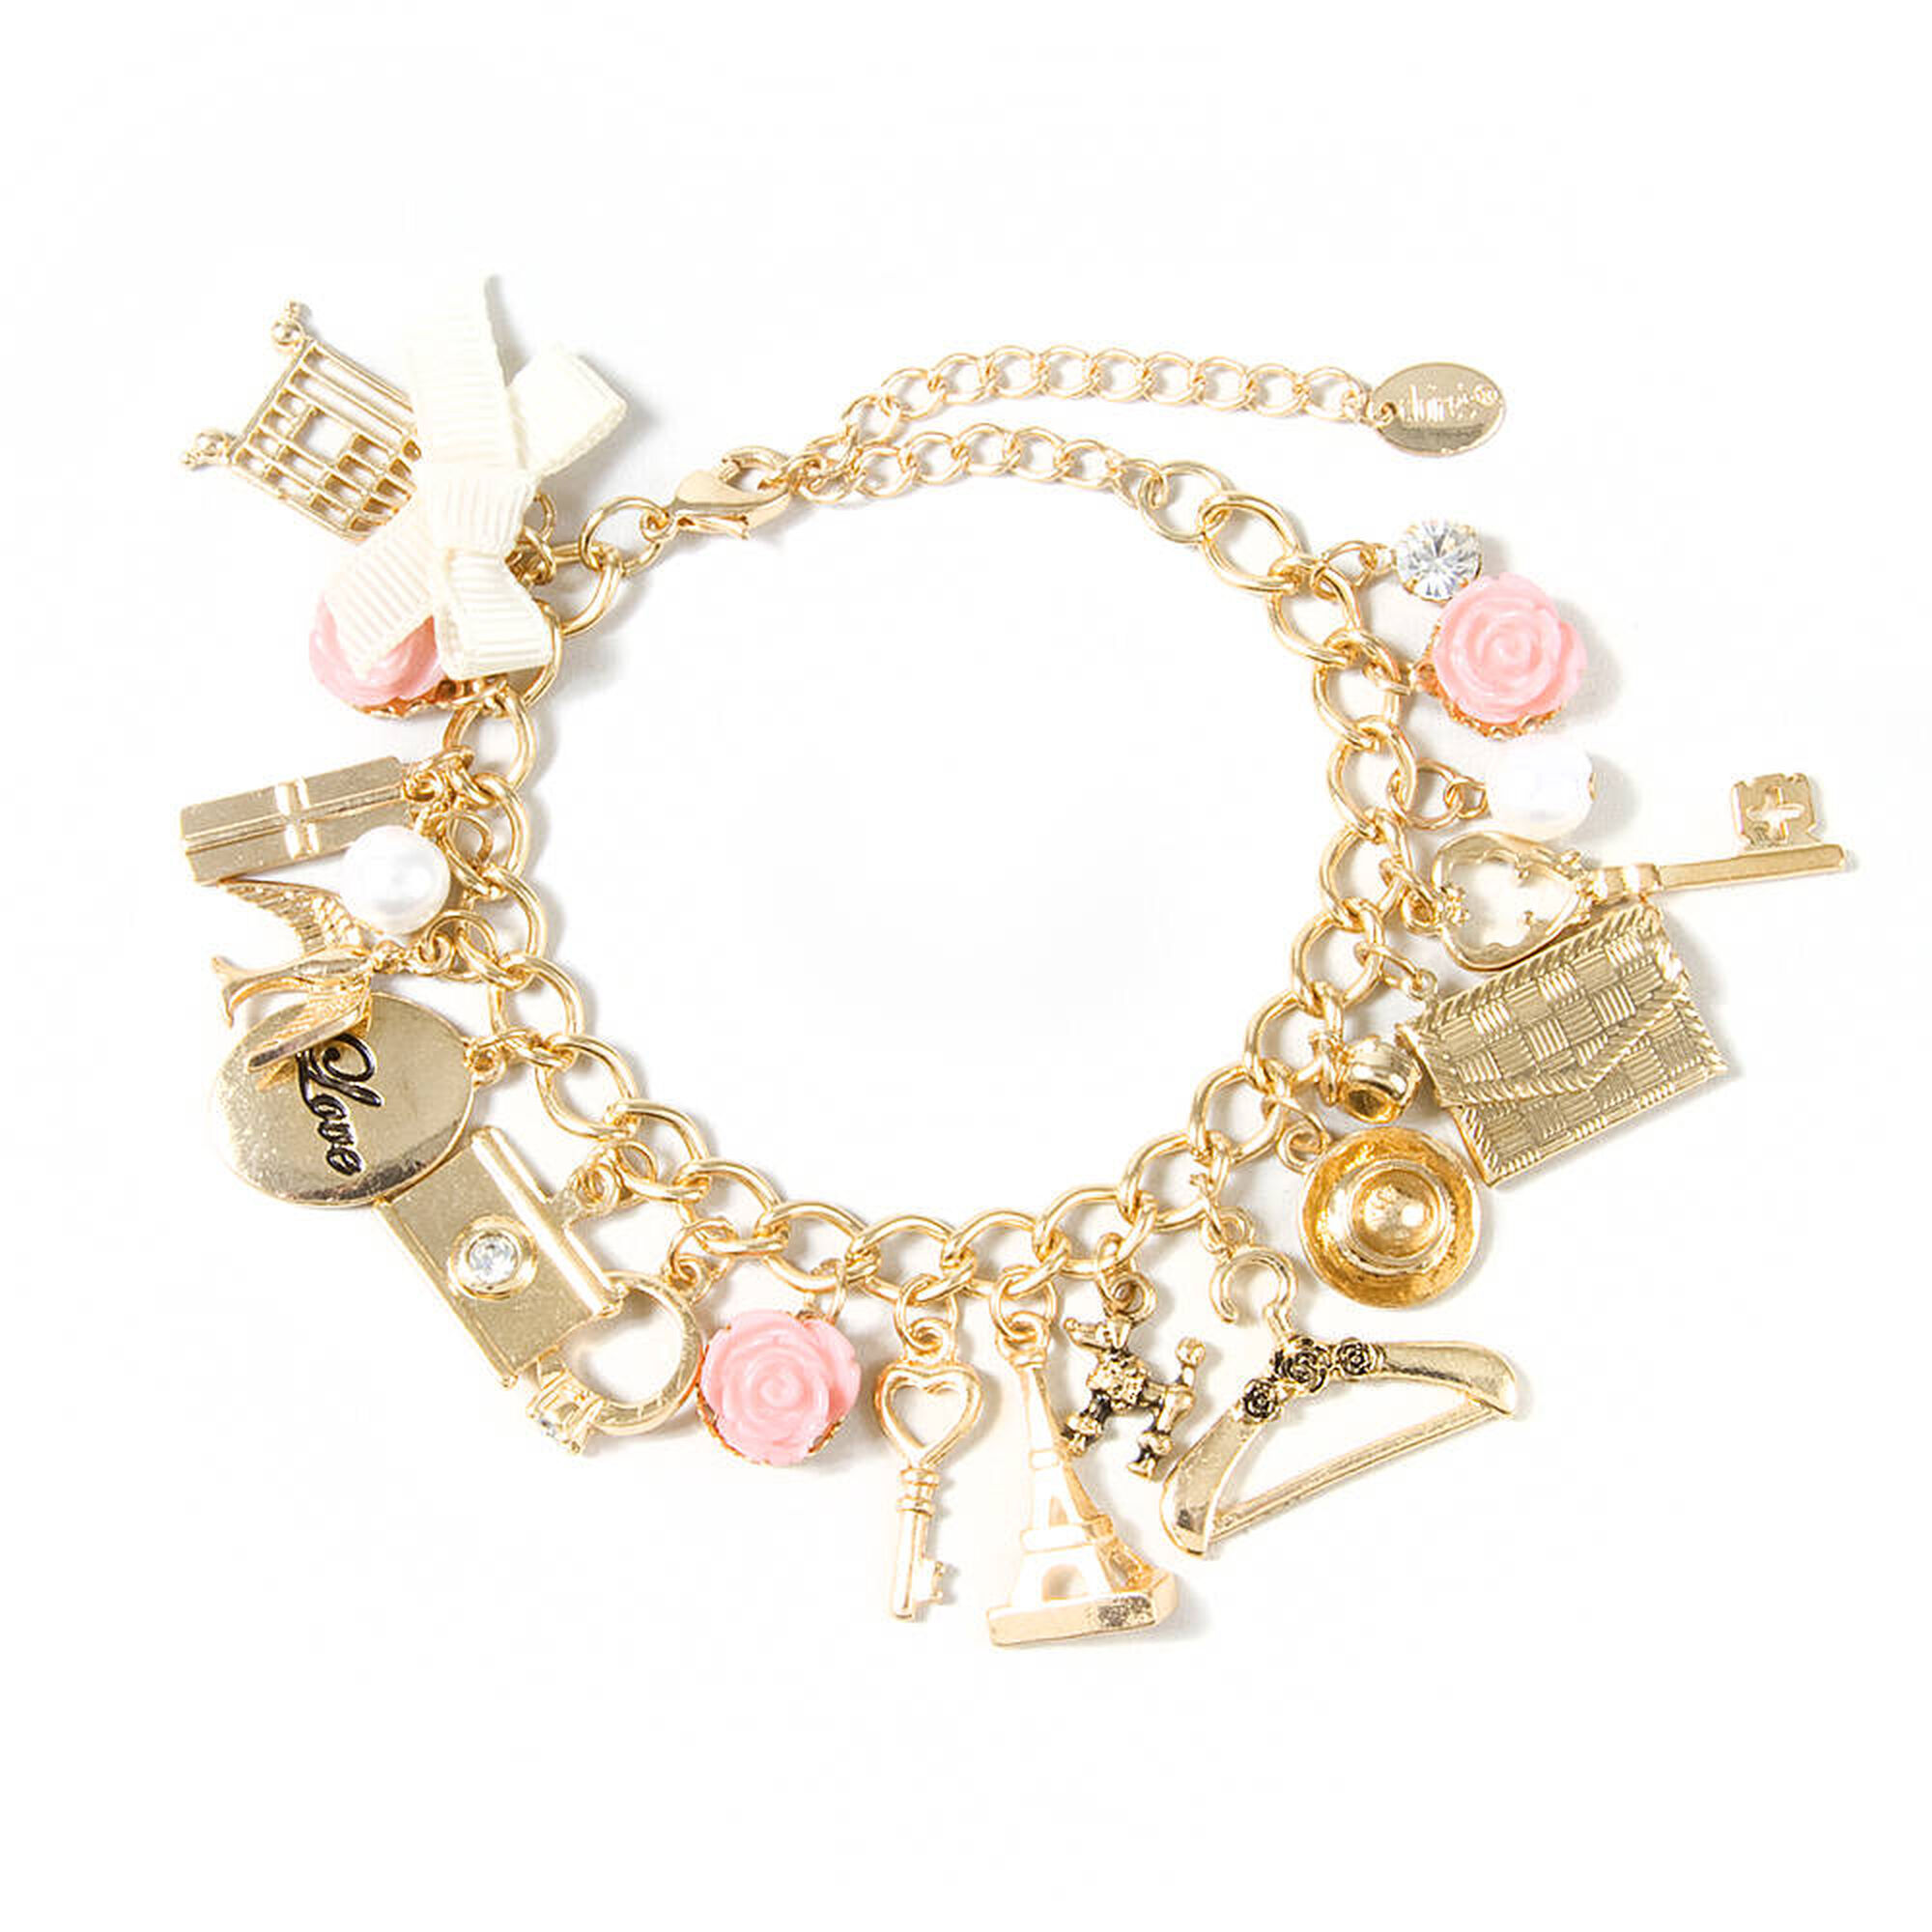 harris shopify tennis diamond bracelet charm bracelets melissa collections bangles jewellery